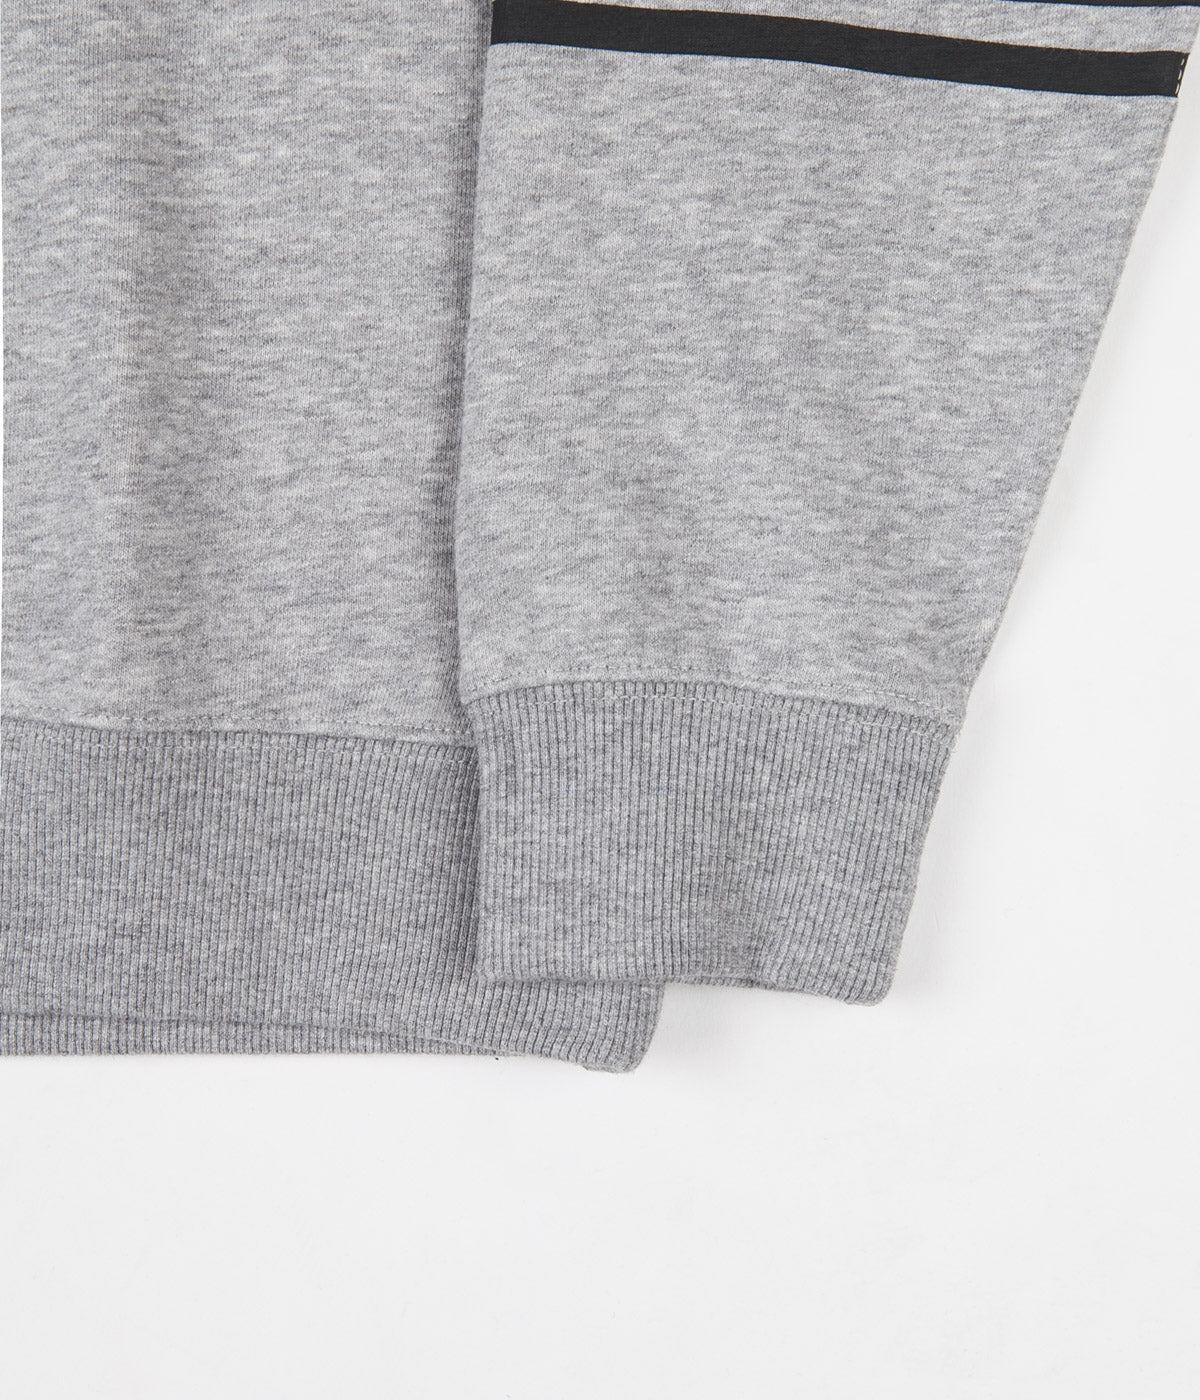 Brixton Stith Stripe International Crewneck Sweatshirt - Heather Grey